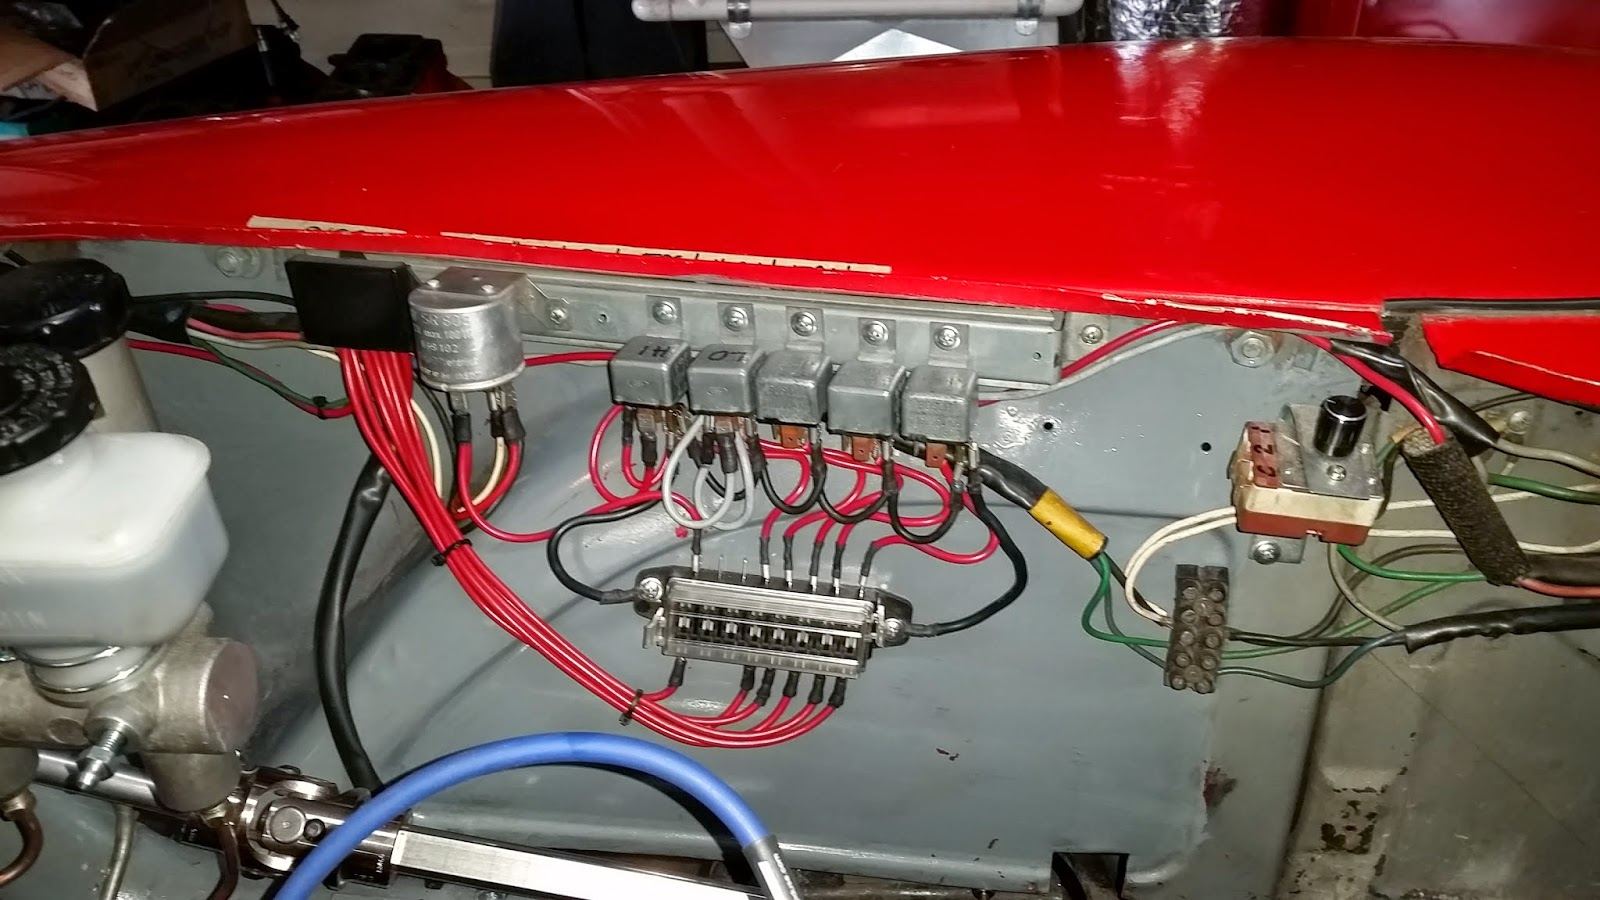 swedishrelics vintage volvo voodoo 2015 the use of old relays instead of fancy new ones is certainly questionable part of the problem is that when i recently ordered some hella 40 amp relays